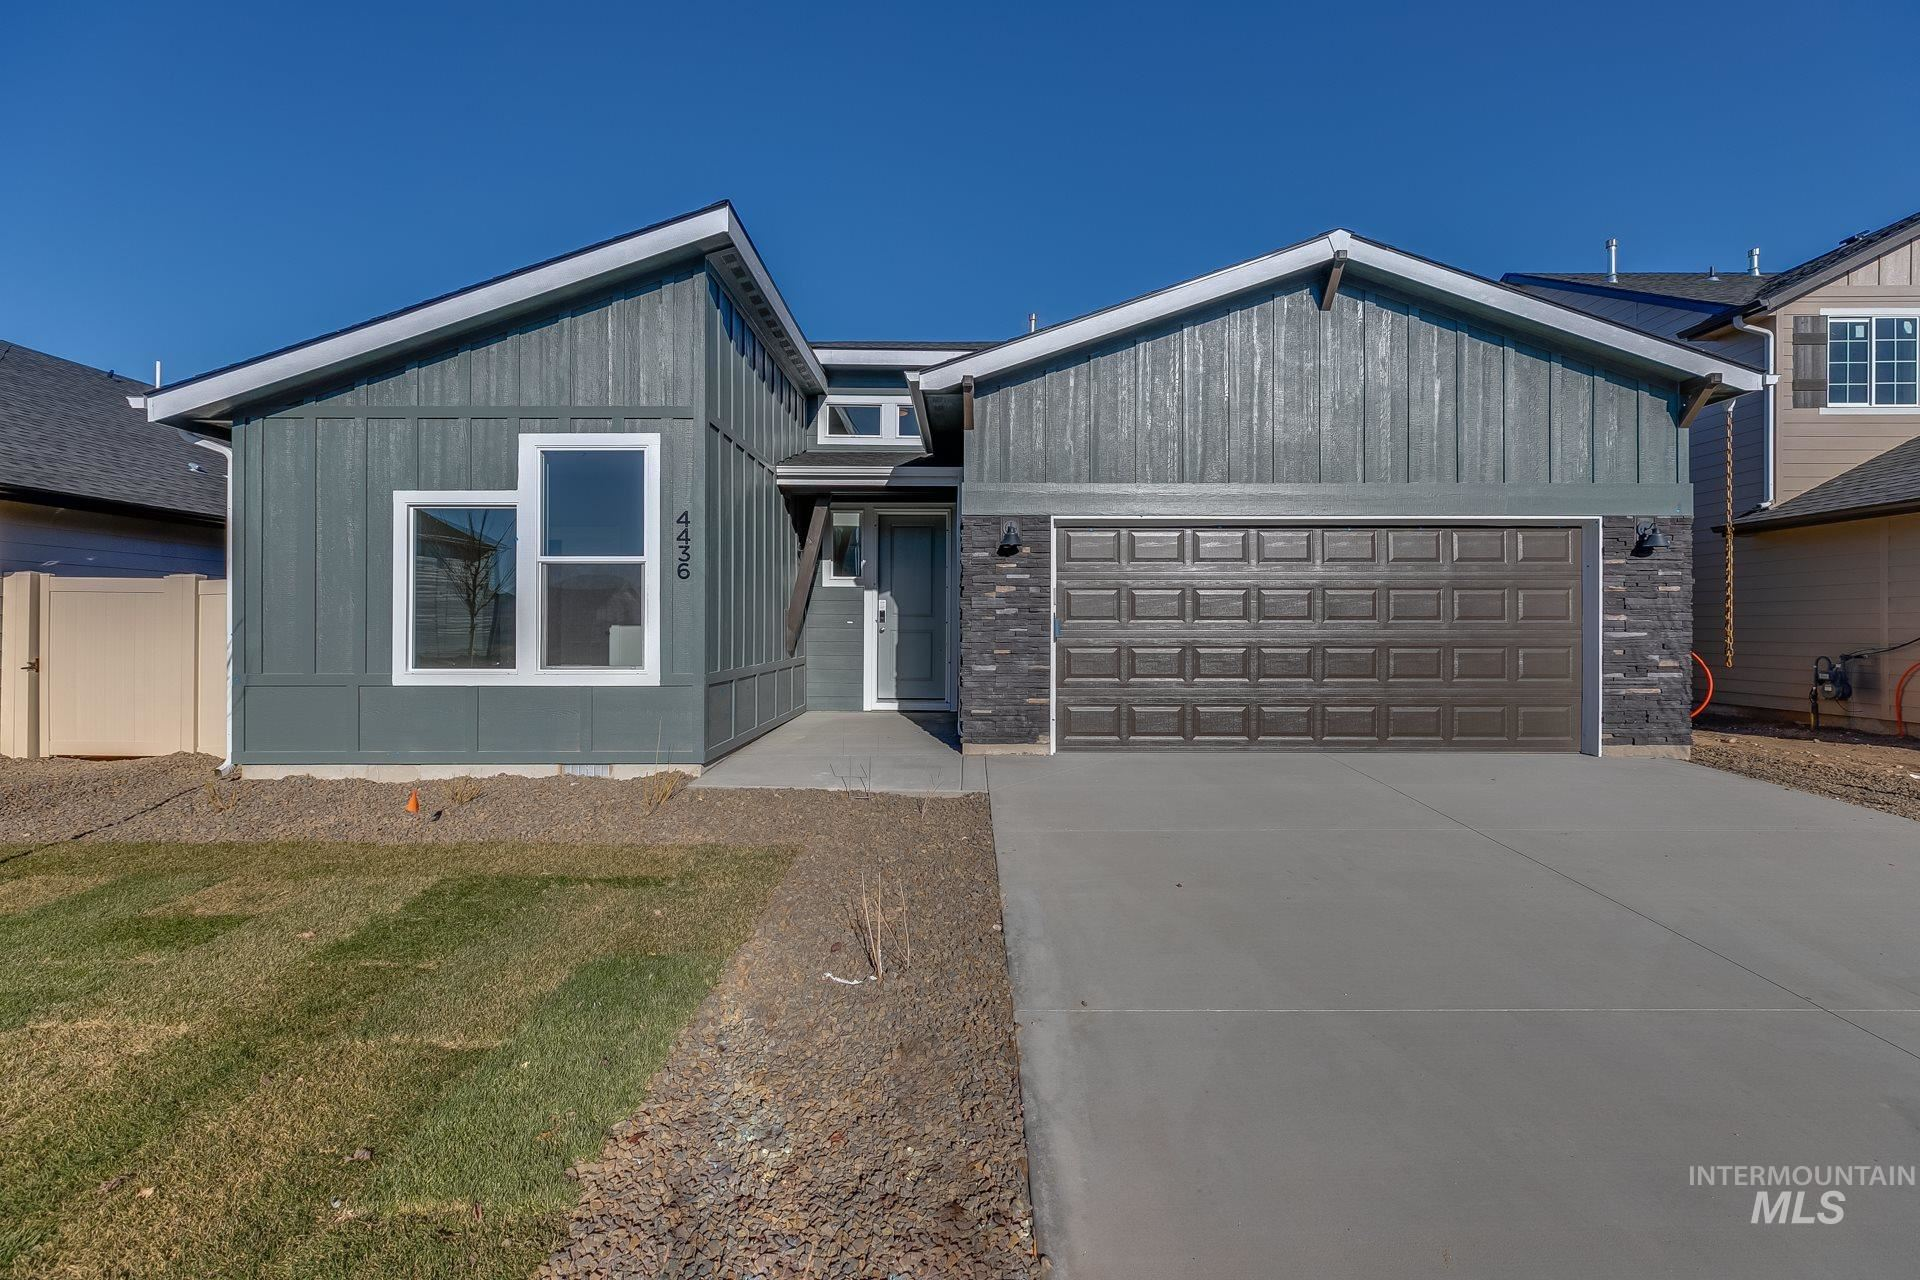 Photo of 4436 W Everest St, Meridian, ID 83646 (MLS # 98784515)